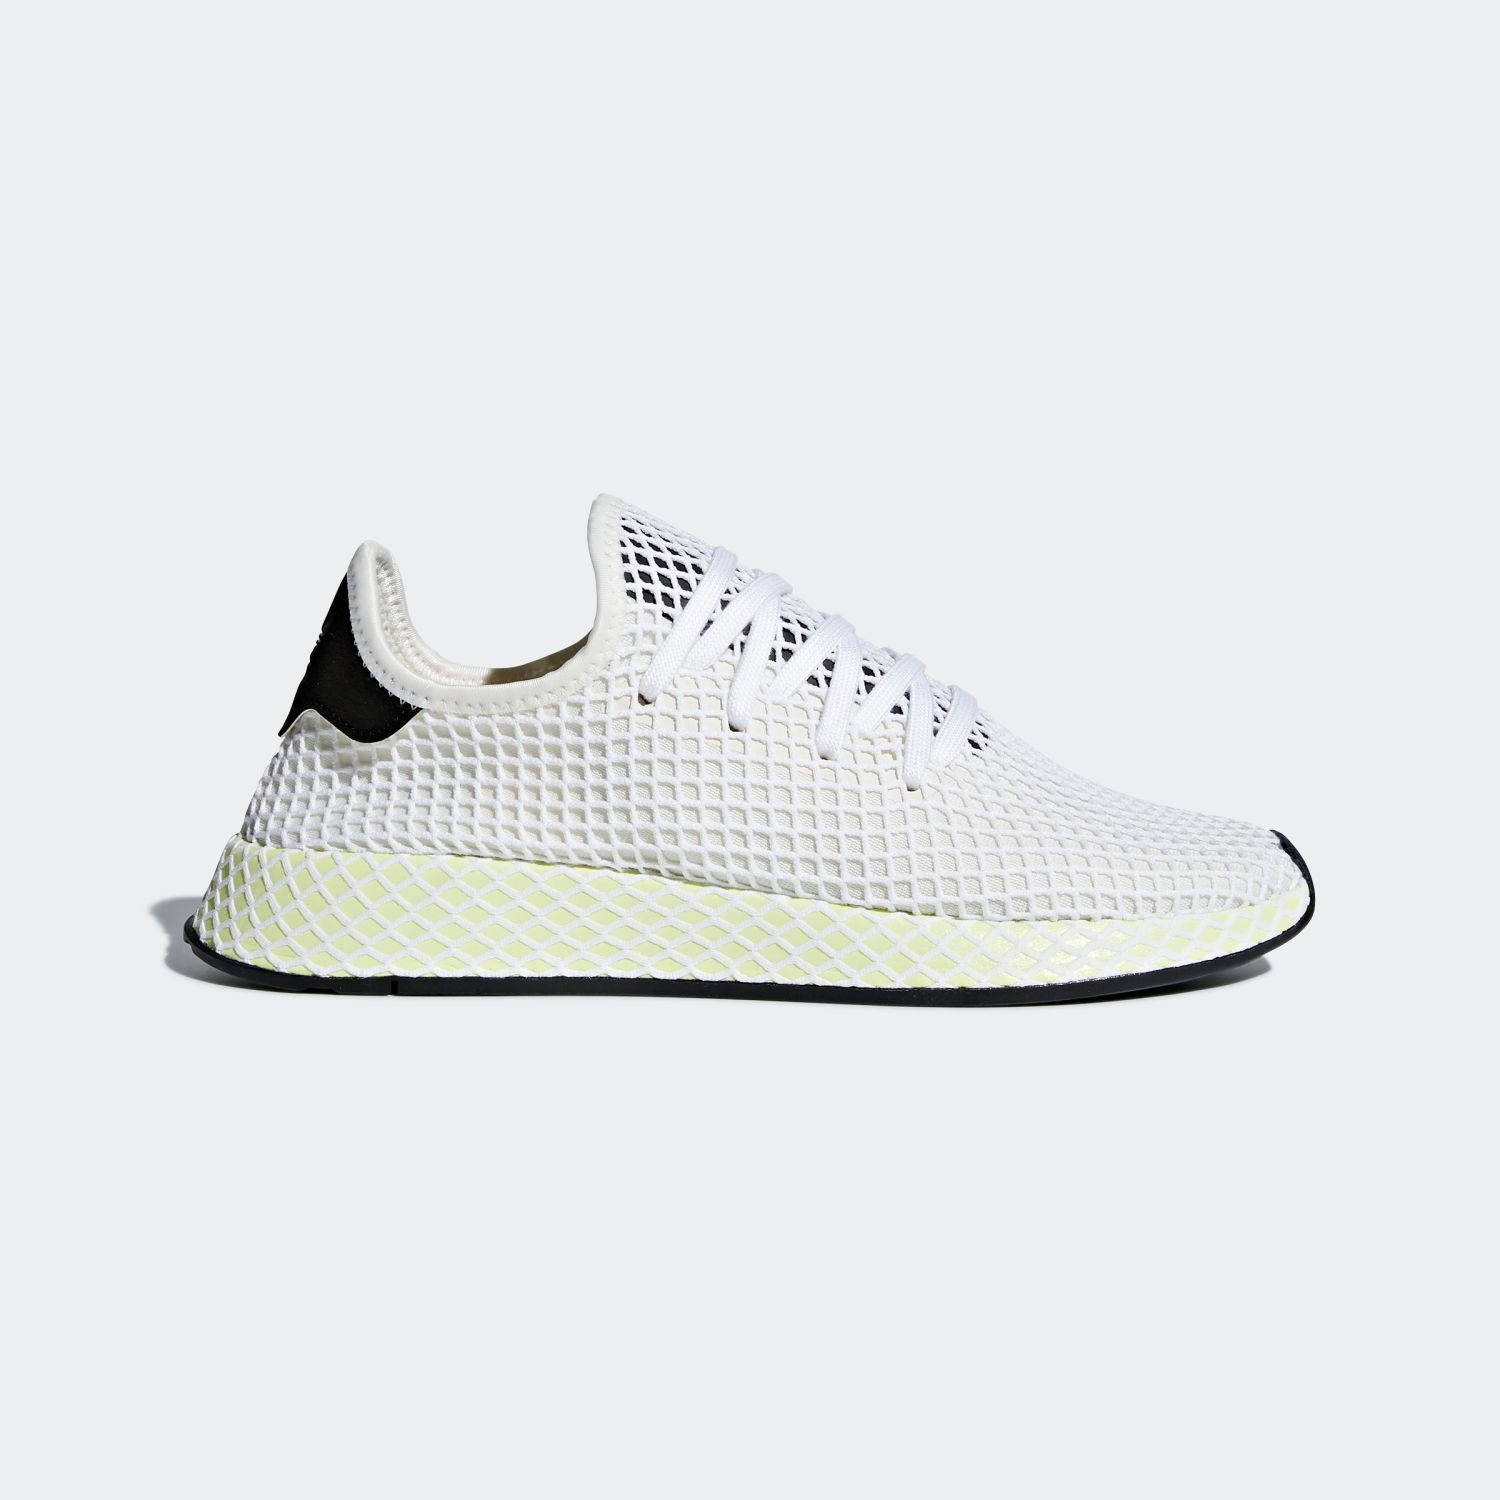 Deerupt Muted Neons Chalk White